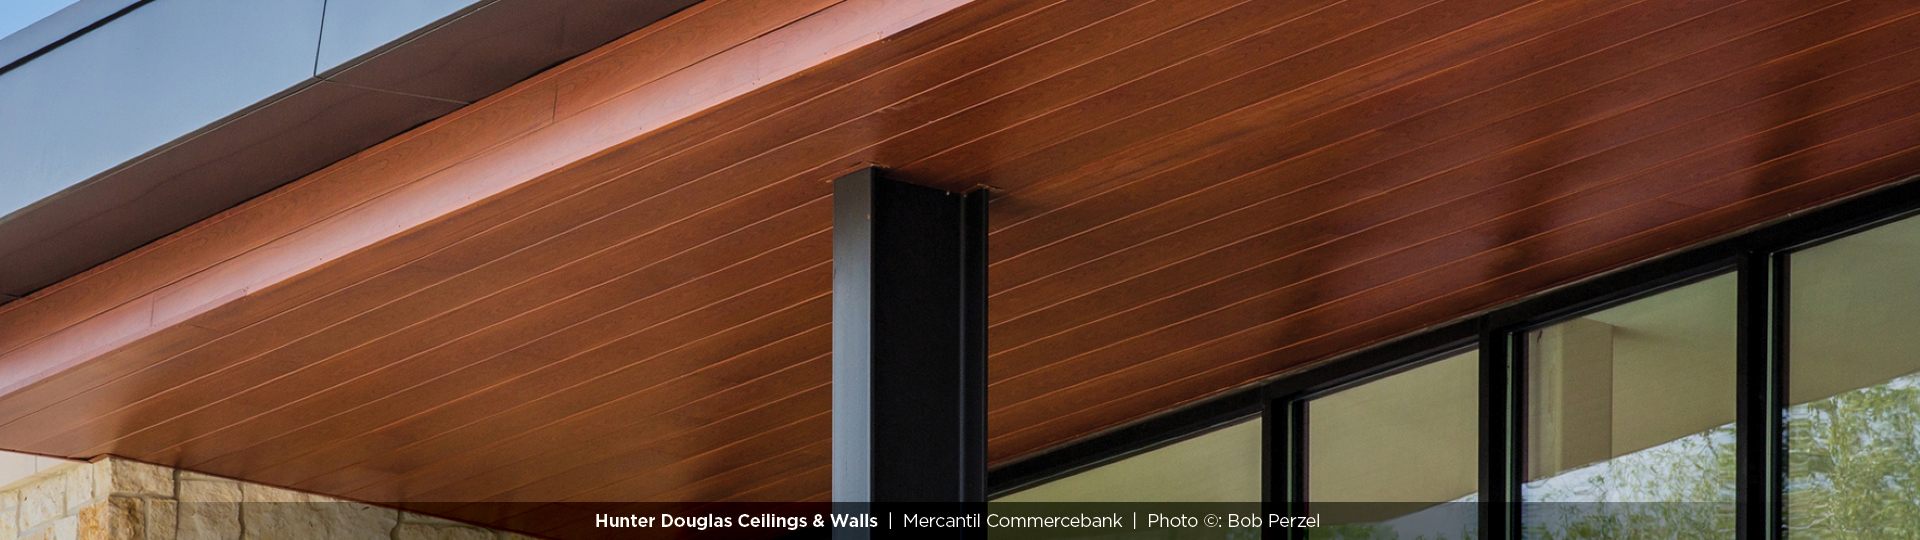 150F - Linear Metal Soffit System - Specialty Ceilings and